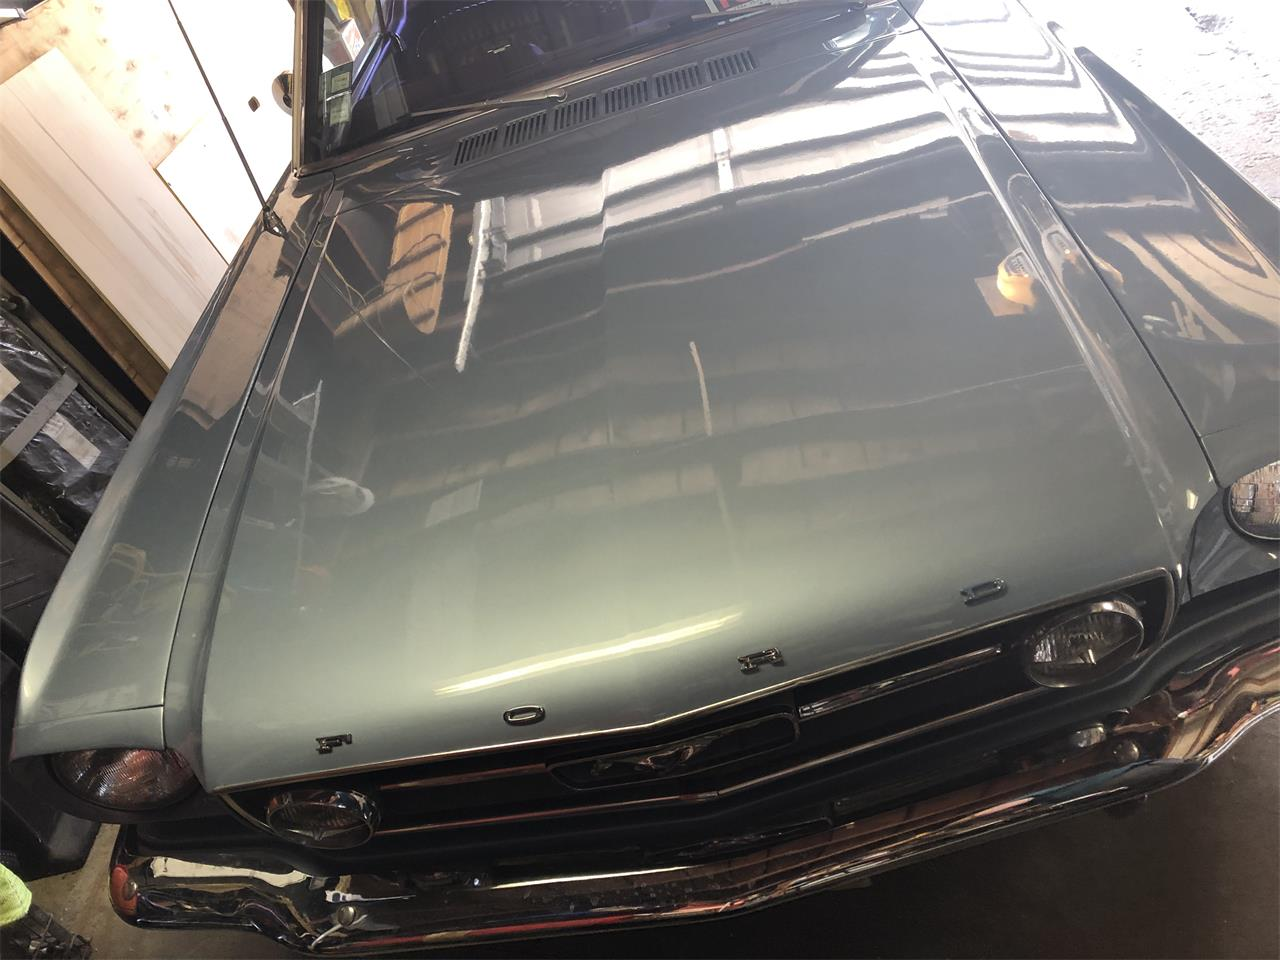 Ford Mustang Pony v8 289 1966 prix tout compris